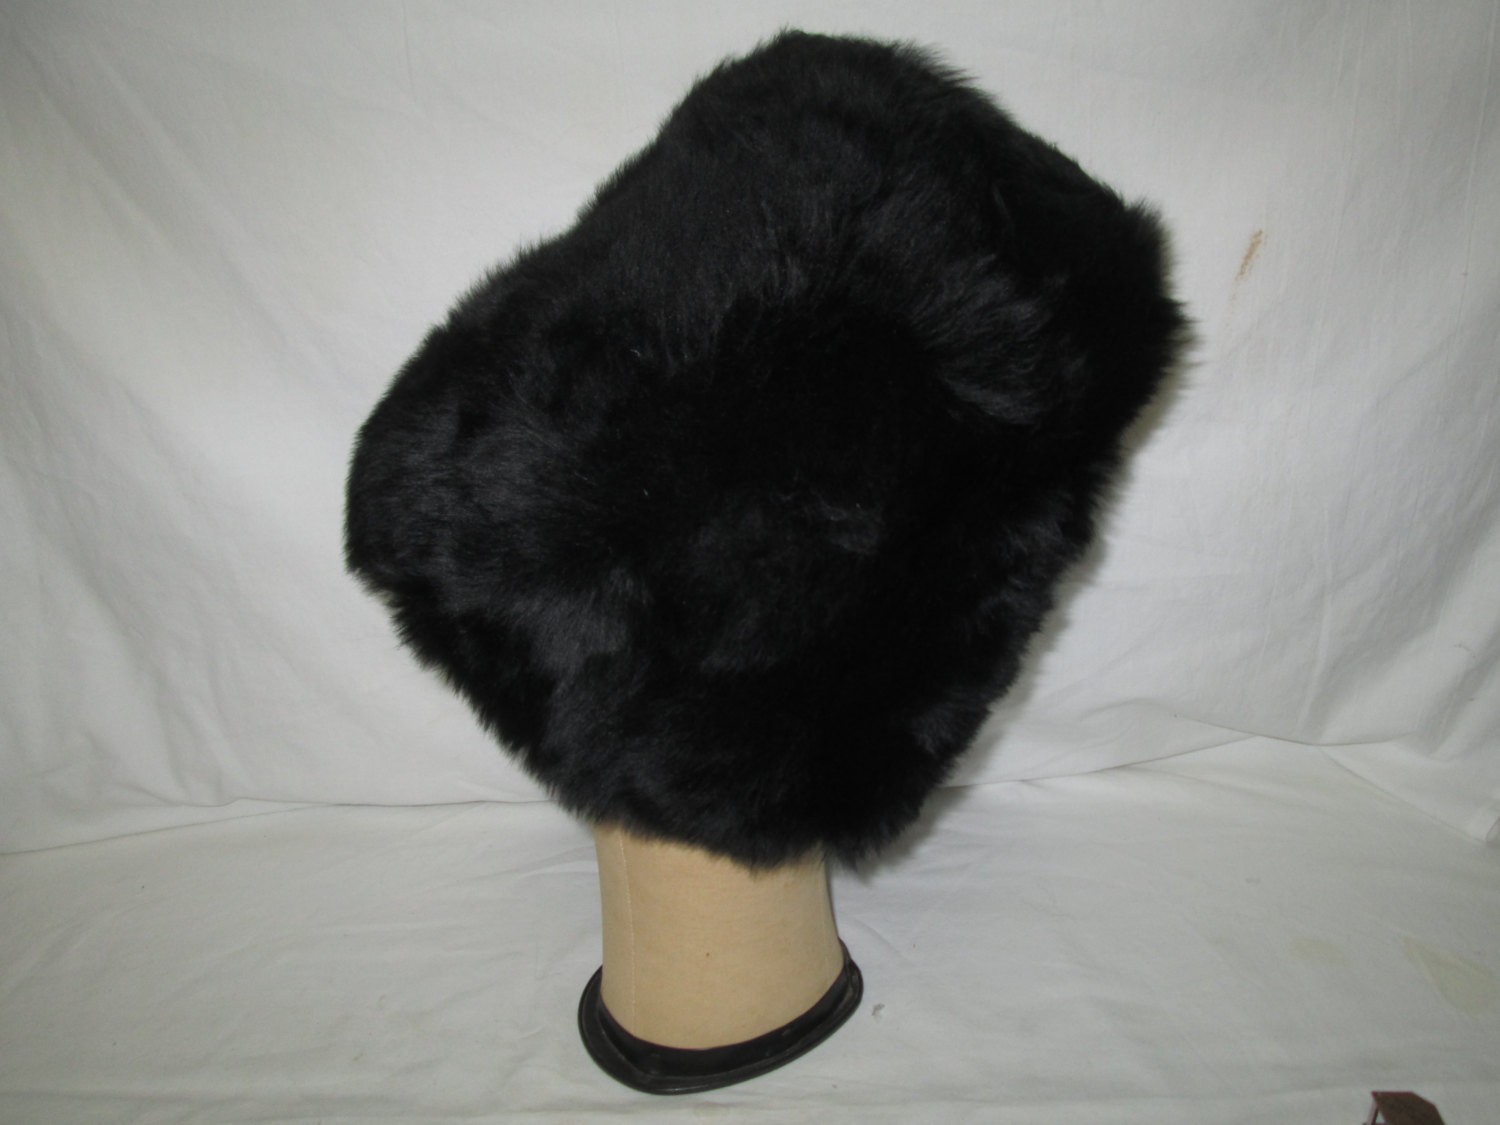 Antique Black Fantastic Tall Faux Fur Hat Made in Italy Suede Lining Russian Style or English Guard hat Size 6 7/8 metric 55